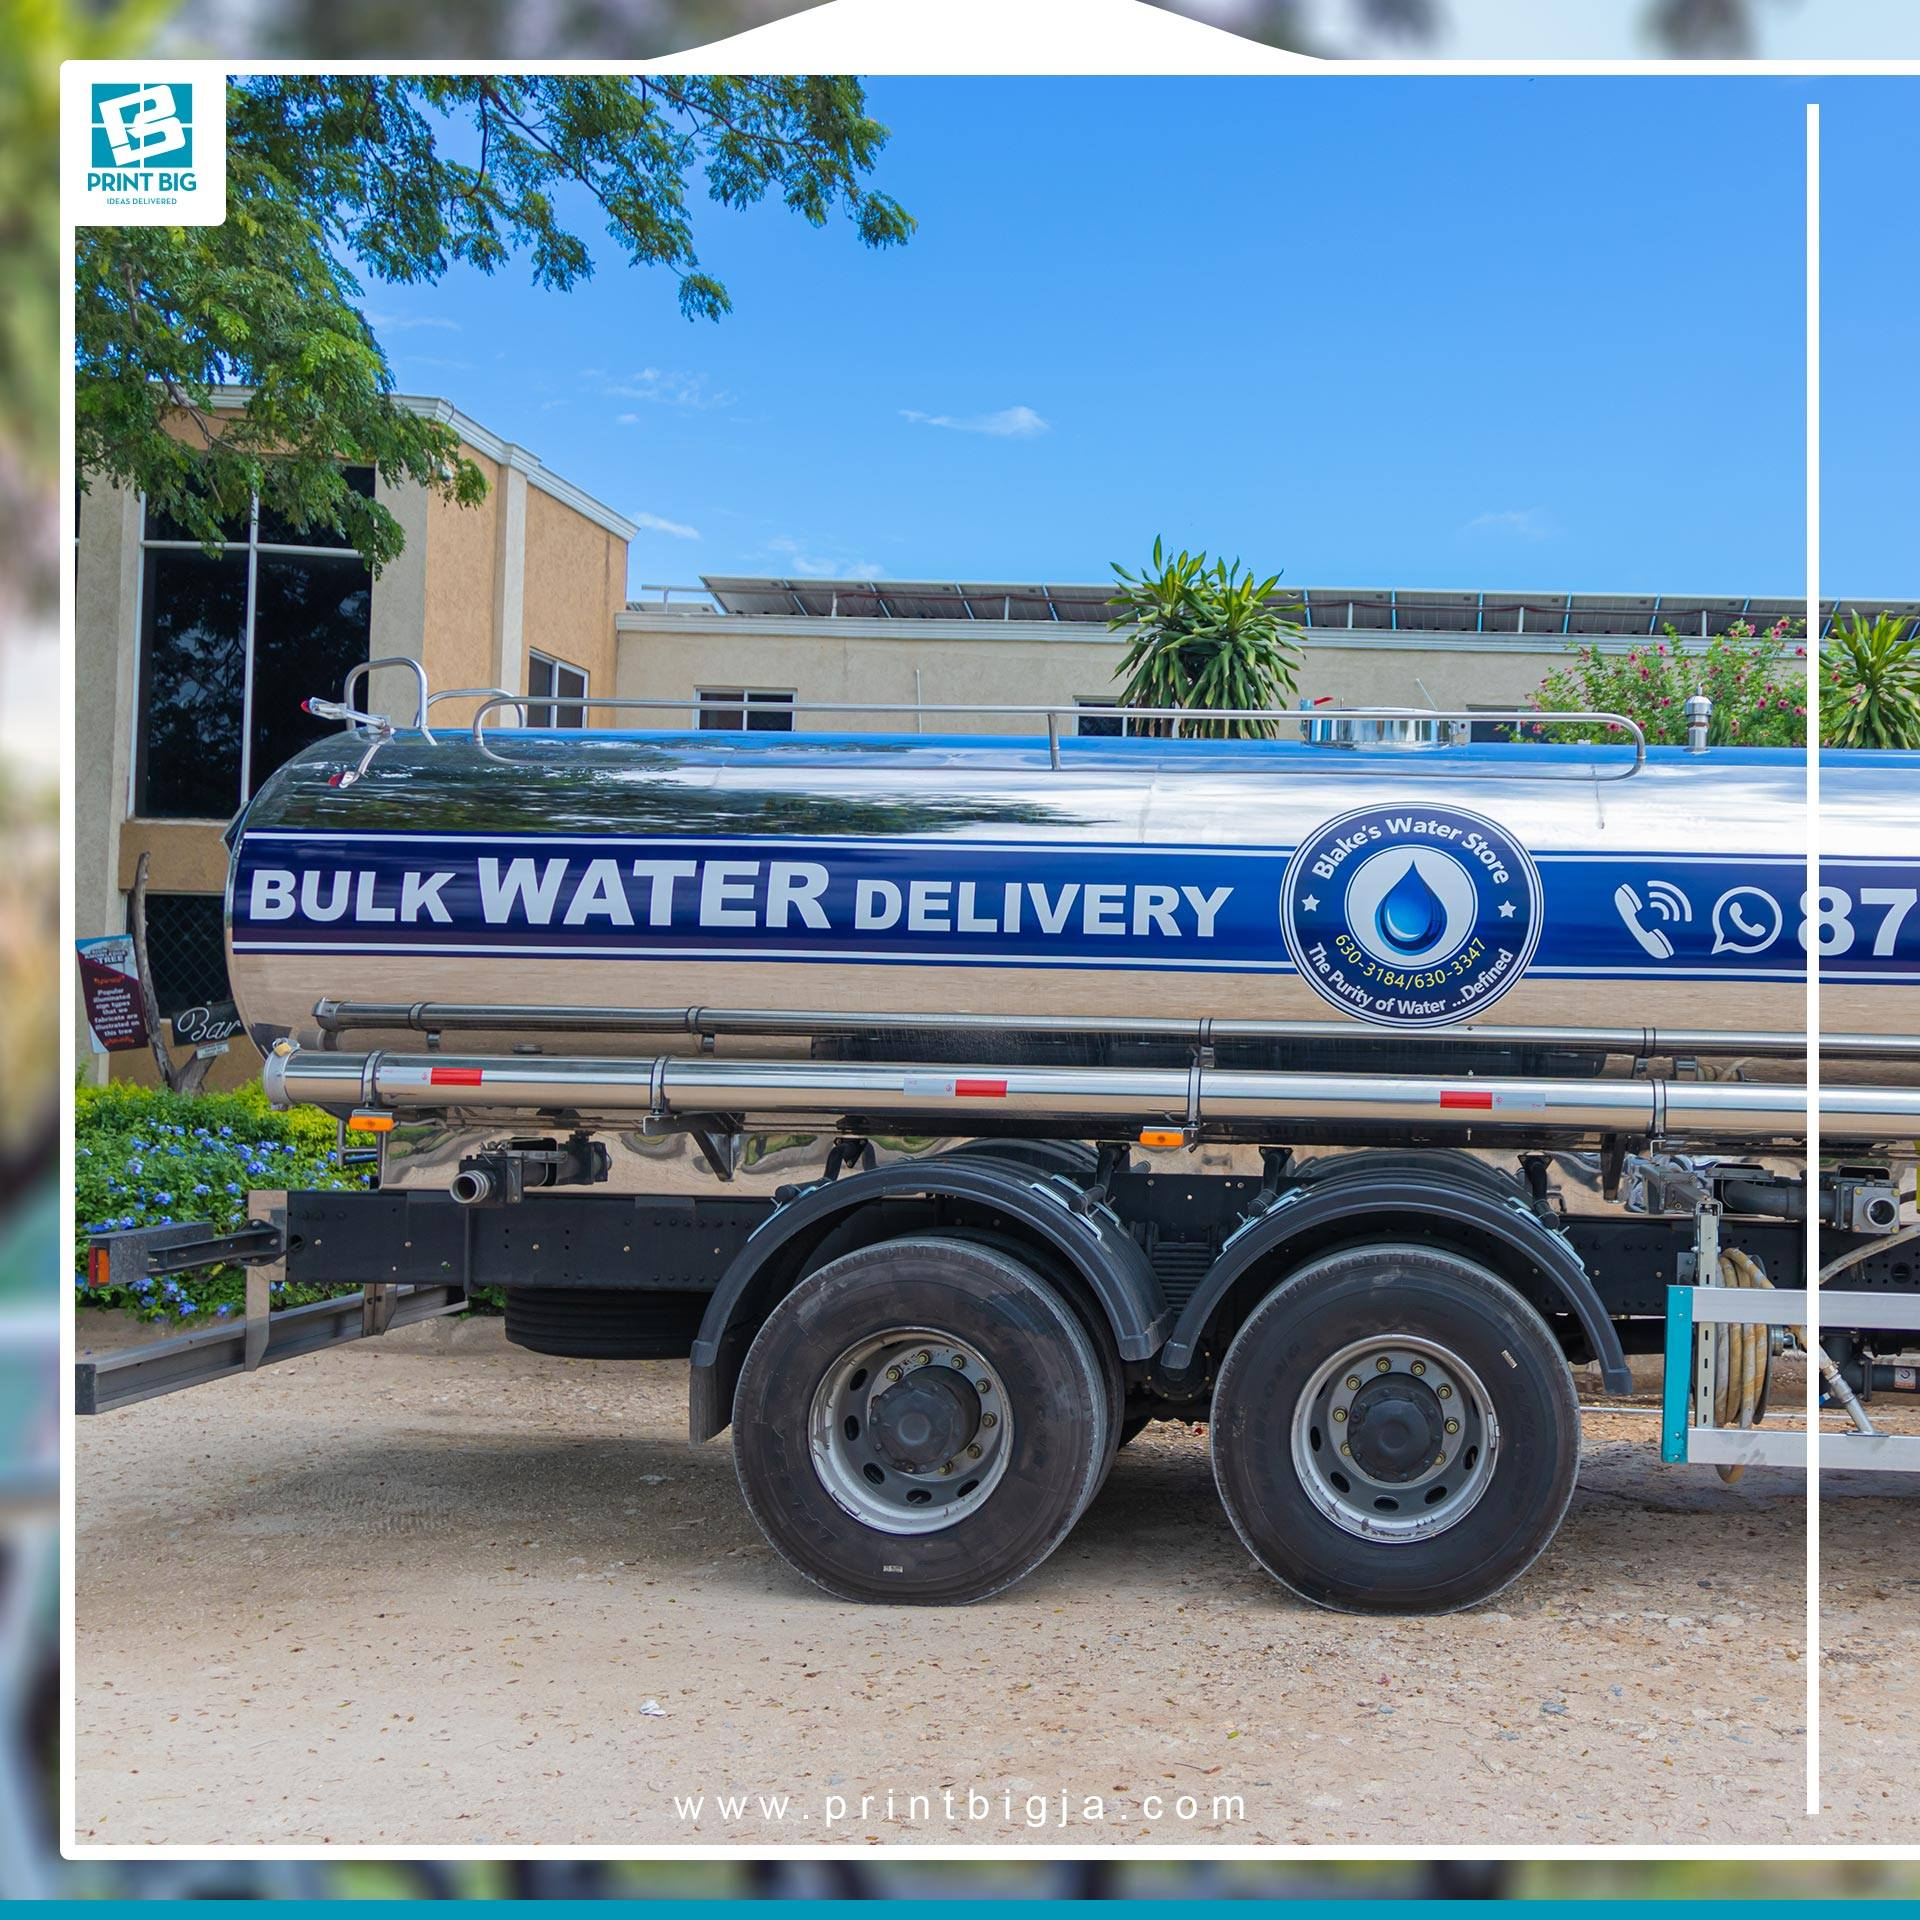 Vehicle wraps offer the ultimate in branding and